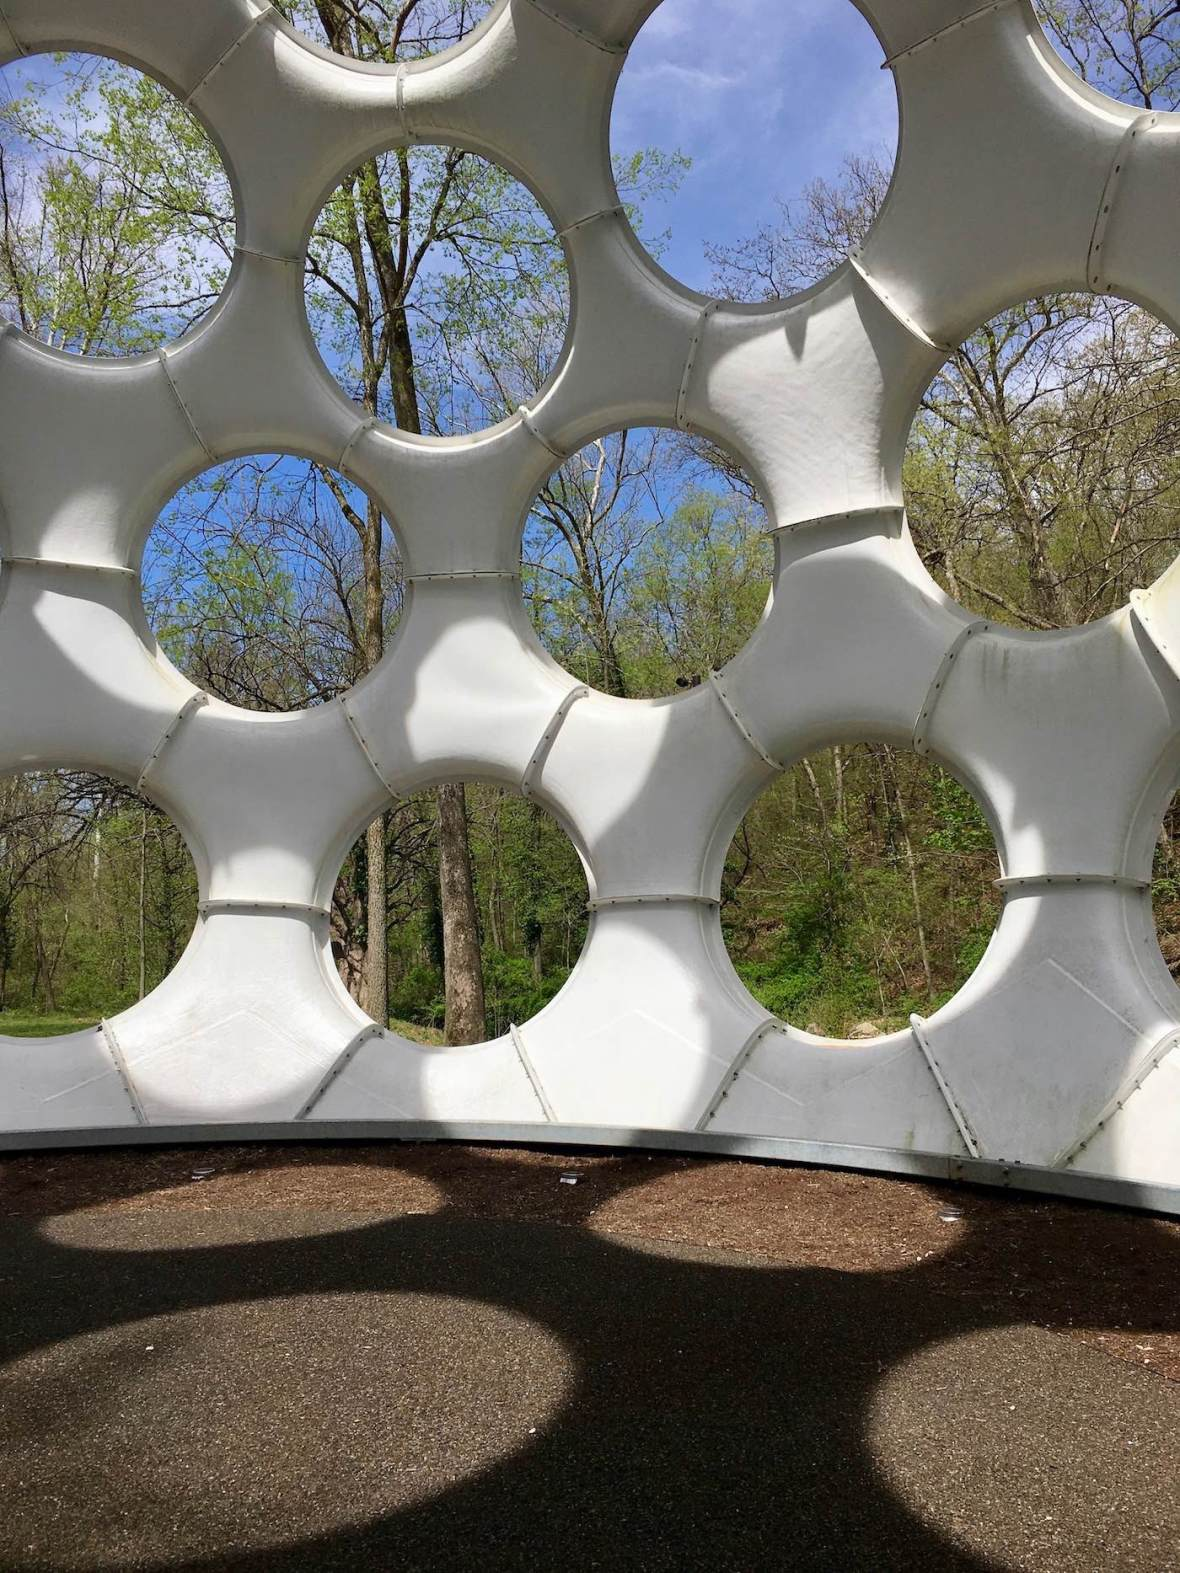 Buckminster Fuller's Fly's Eye Dome at Crystal Bridges Museum of American Art in Bentonville, Arkansas